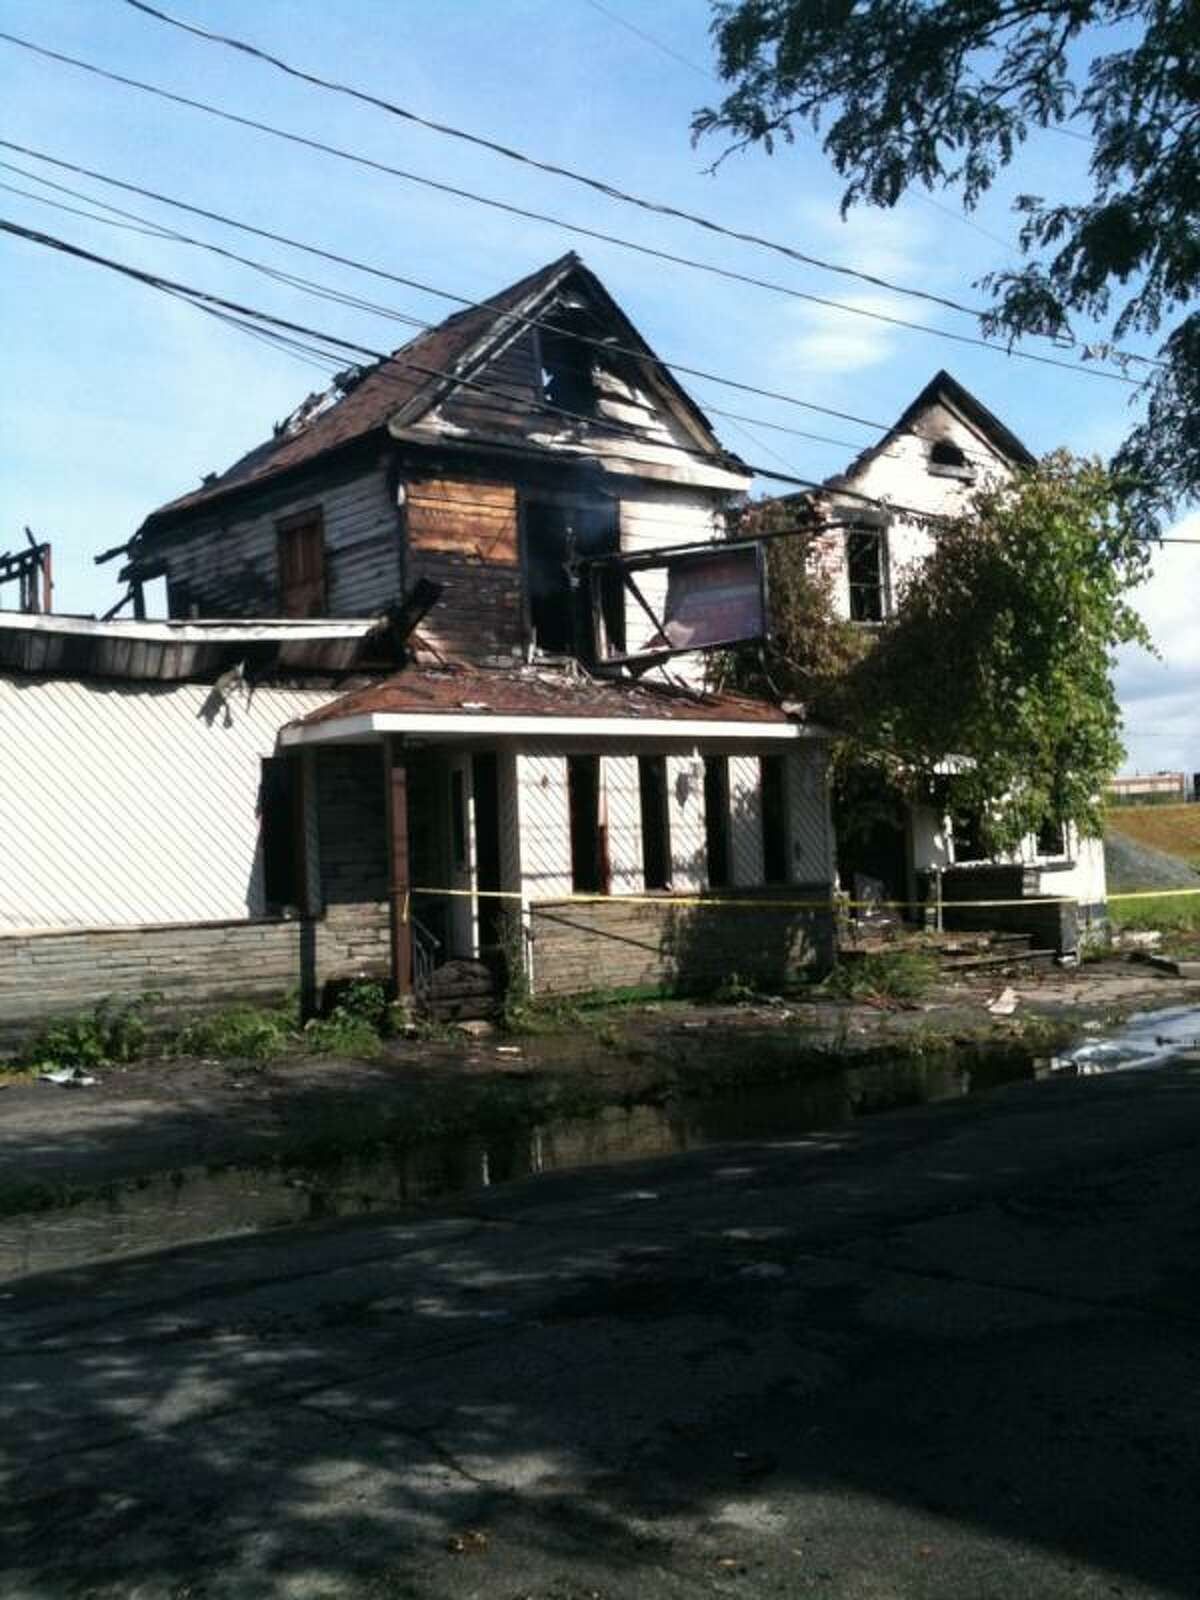 This is what remains after fire tore through the former Luigi's Restaurant on Barrett Street in Schenectady on Thursday, July 5, 2012. (Matthew Hamilton / Times Union)